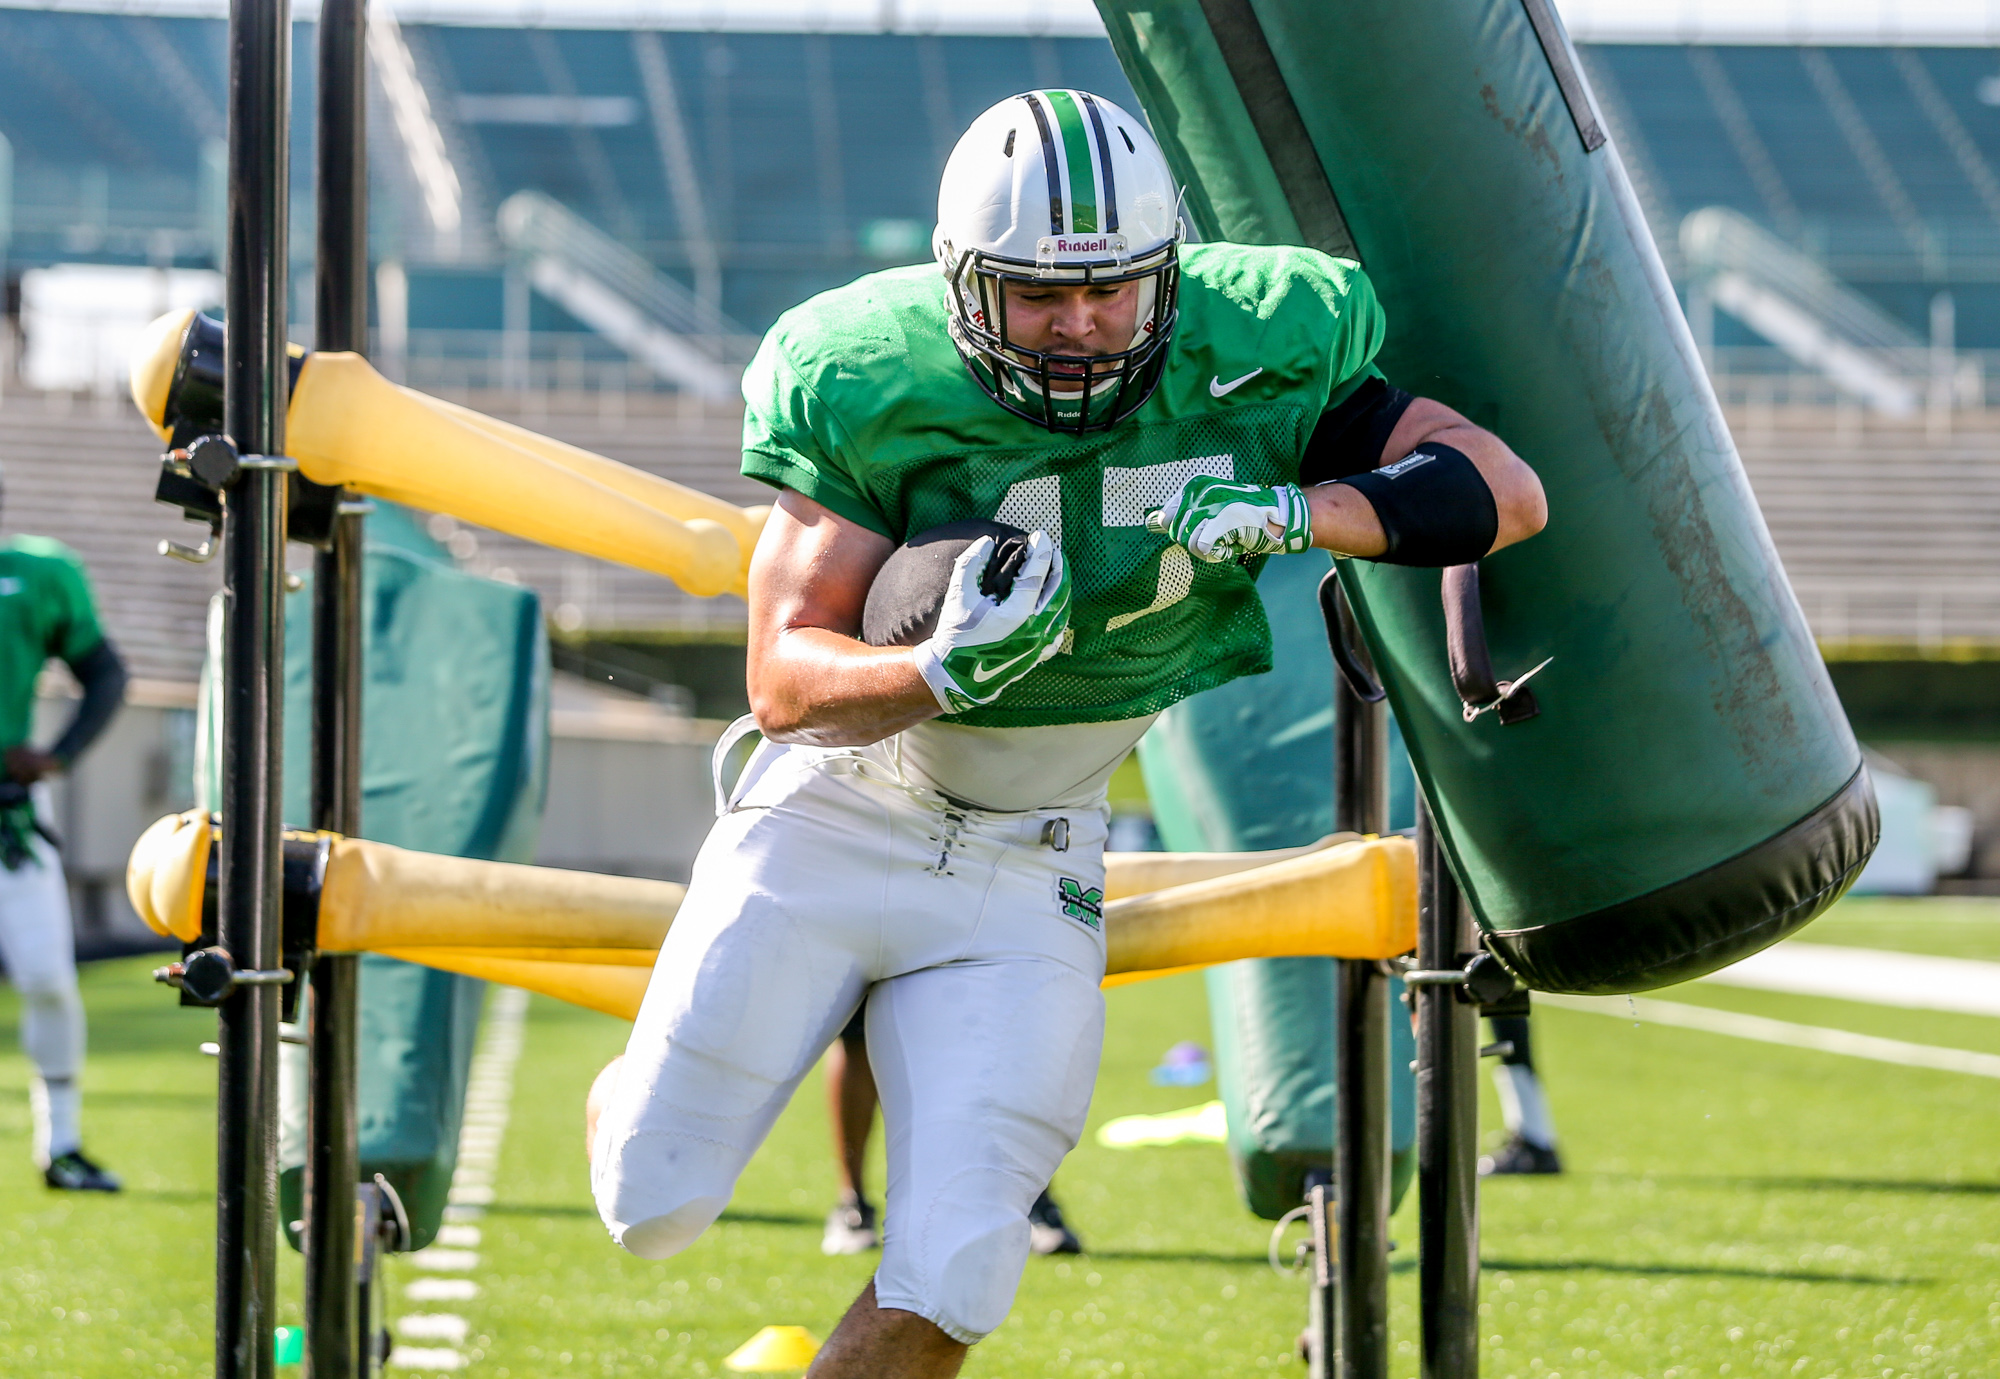 FILE - In this April 18, 2015, file photo, Marshall running back Devon Johnson runs through a drill as the NCAA college football team held an intrasquad scrimmage in Huntington, W.Va. Nicknamed Rockhead for his bruising style, the 244-pound Johnson's move